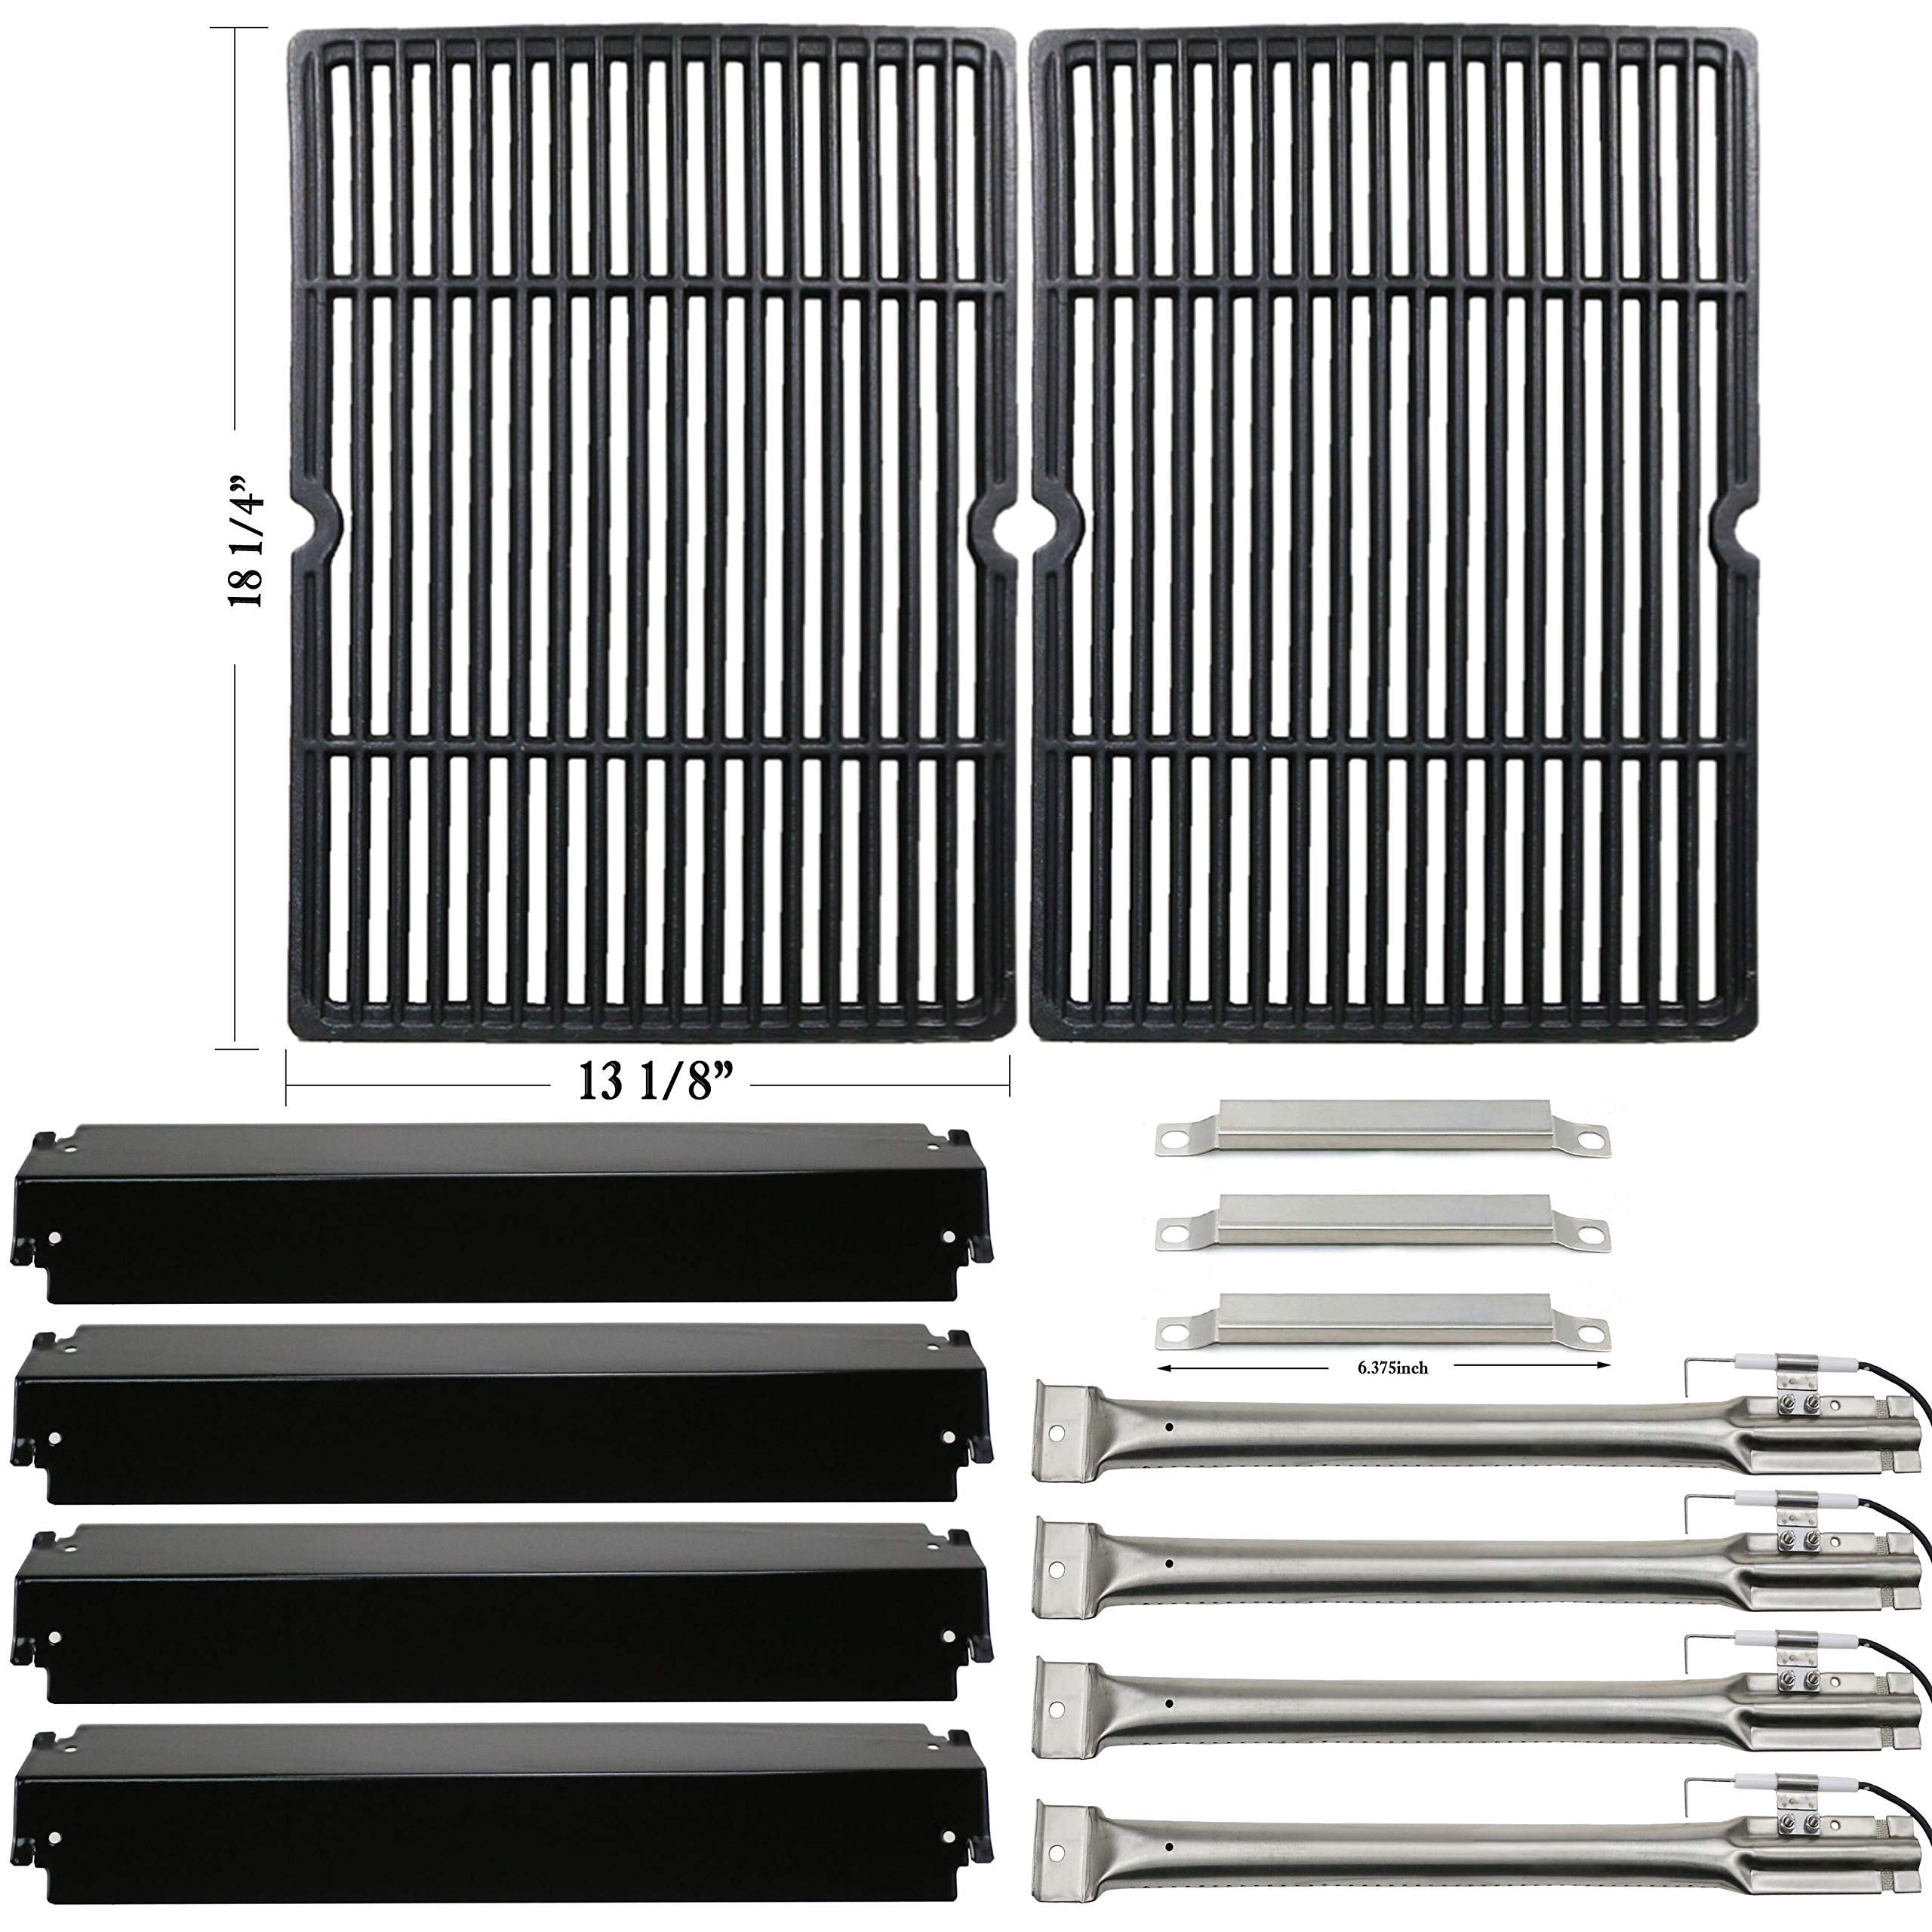 Hisencn Replacement Rebuild Kit for Charbroil Commercial 463268606, 463268007 Gas Grill Burner,Carryover Tubes, Heat Plates, Grill Cooking Grids Grates, Igniter